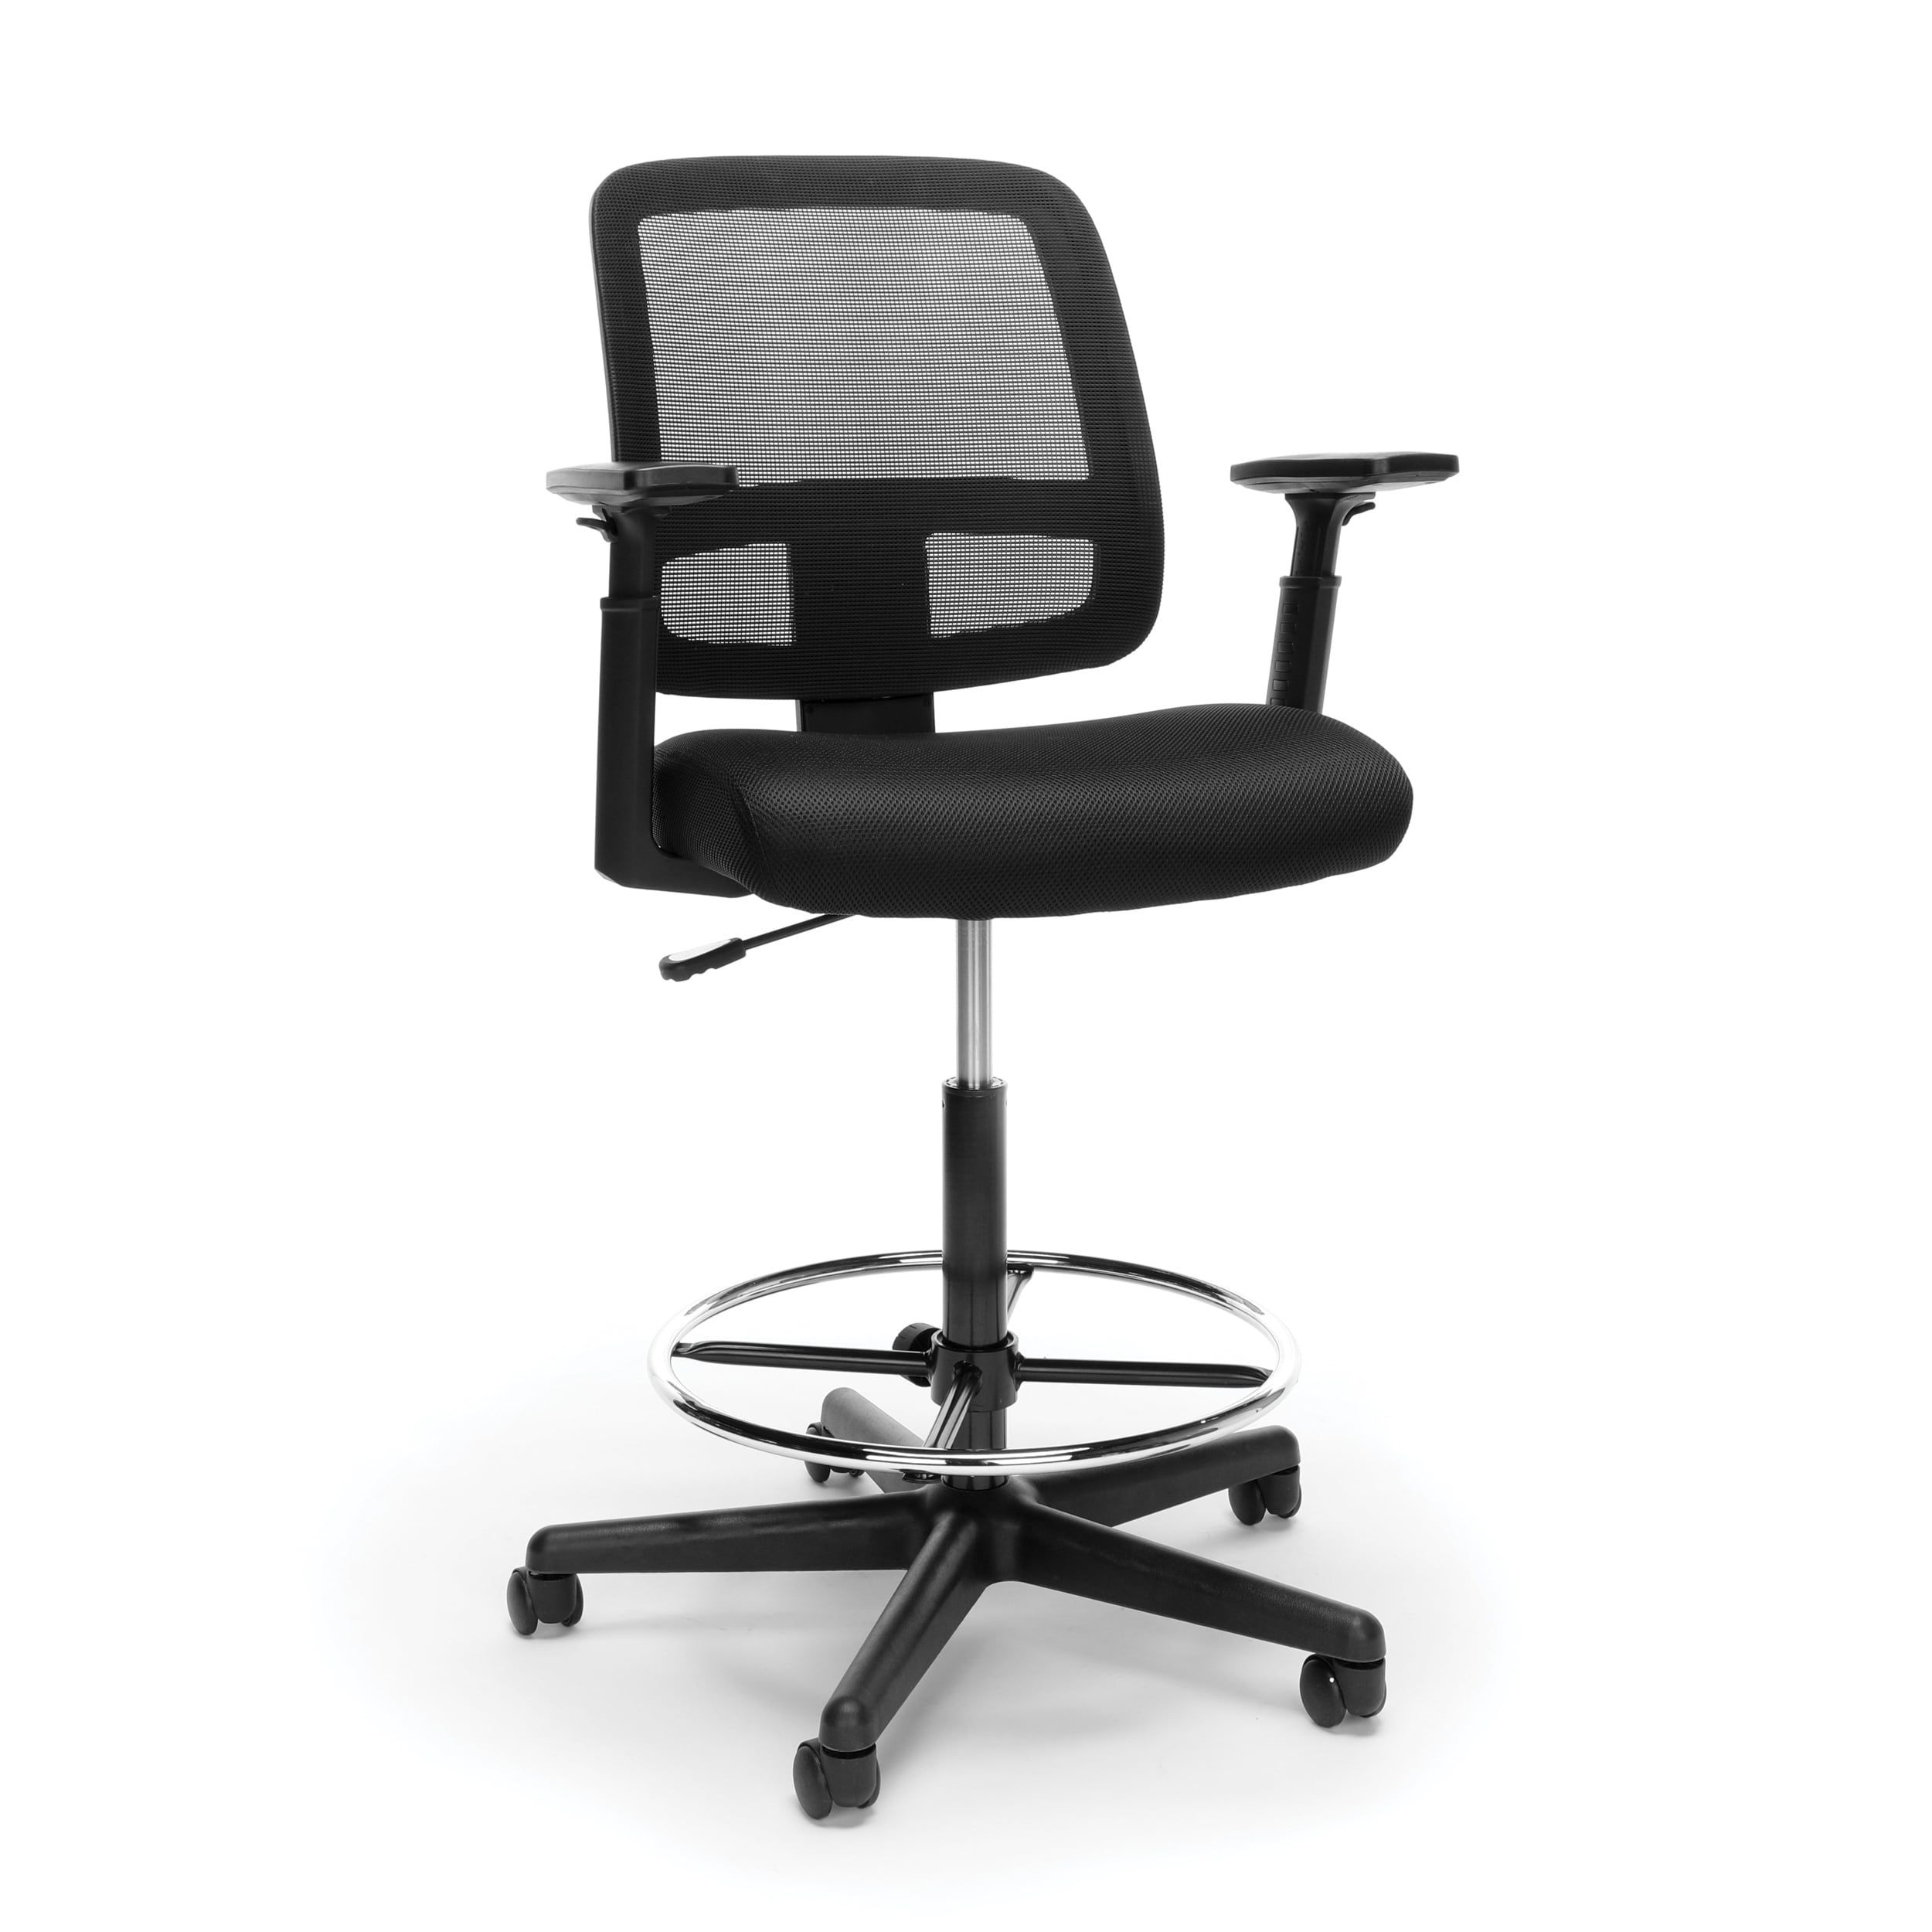 Model E39 Essentials by OFM Mesh Back Stool with Adjustable Arms